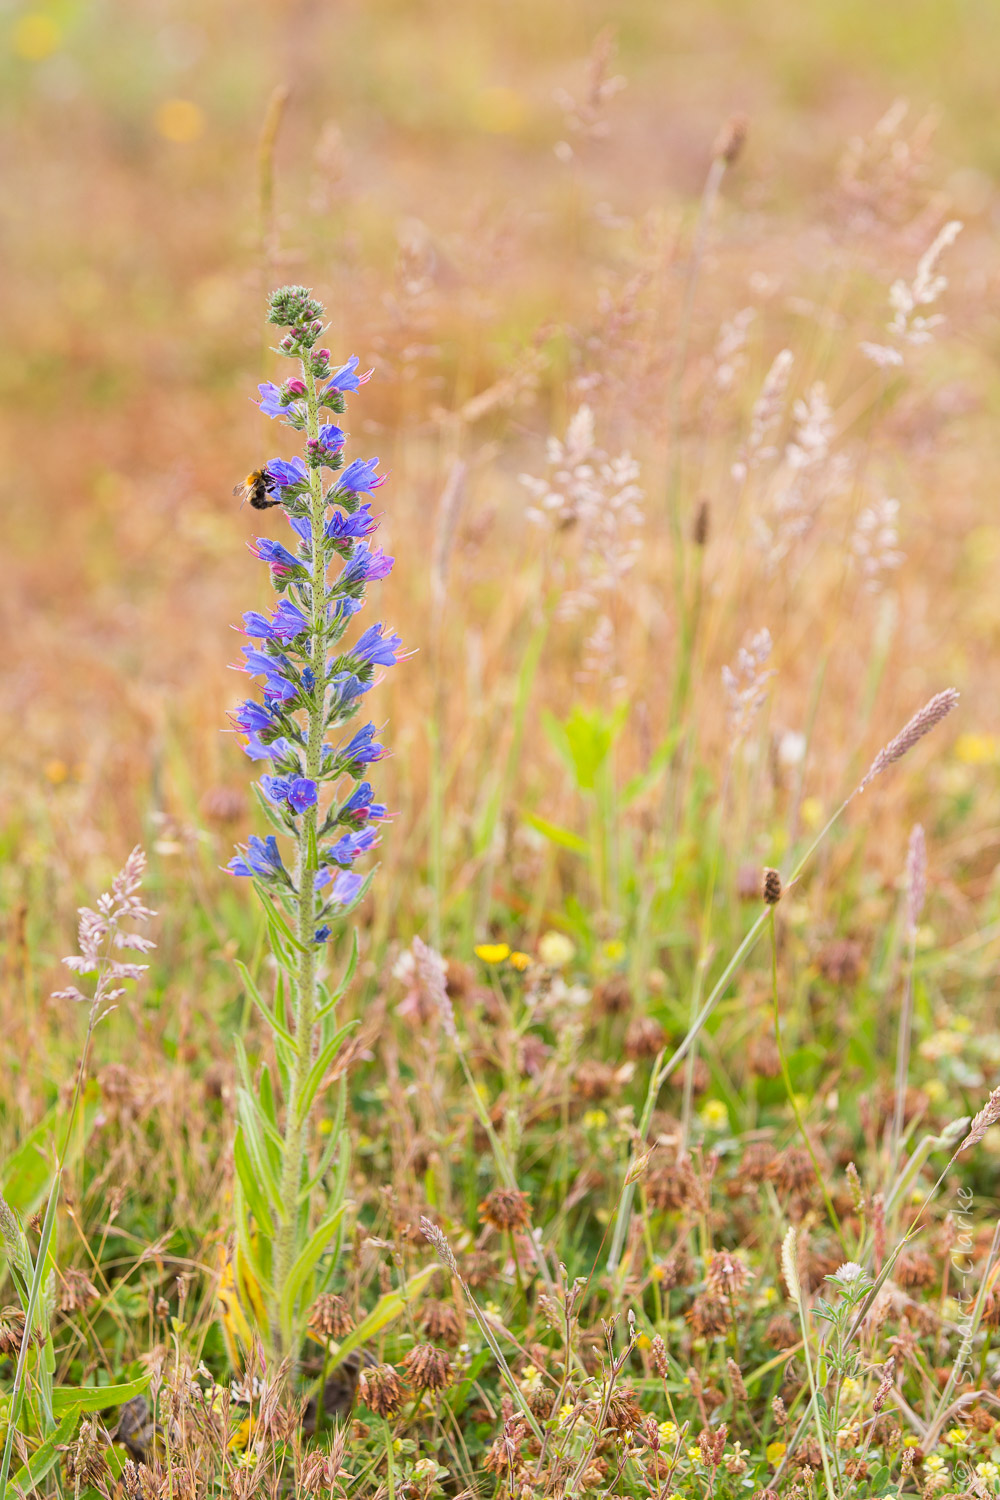 Viper's-bugloss growing wild on Kelling Heath in Norfolk